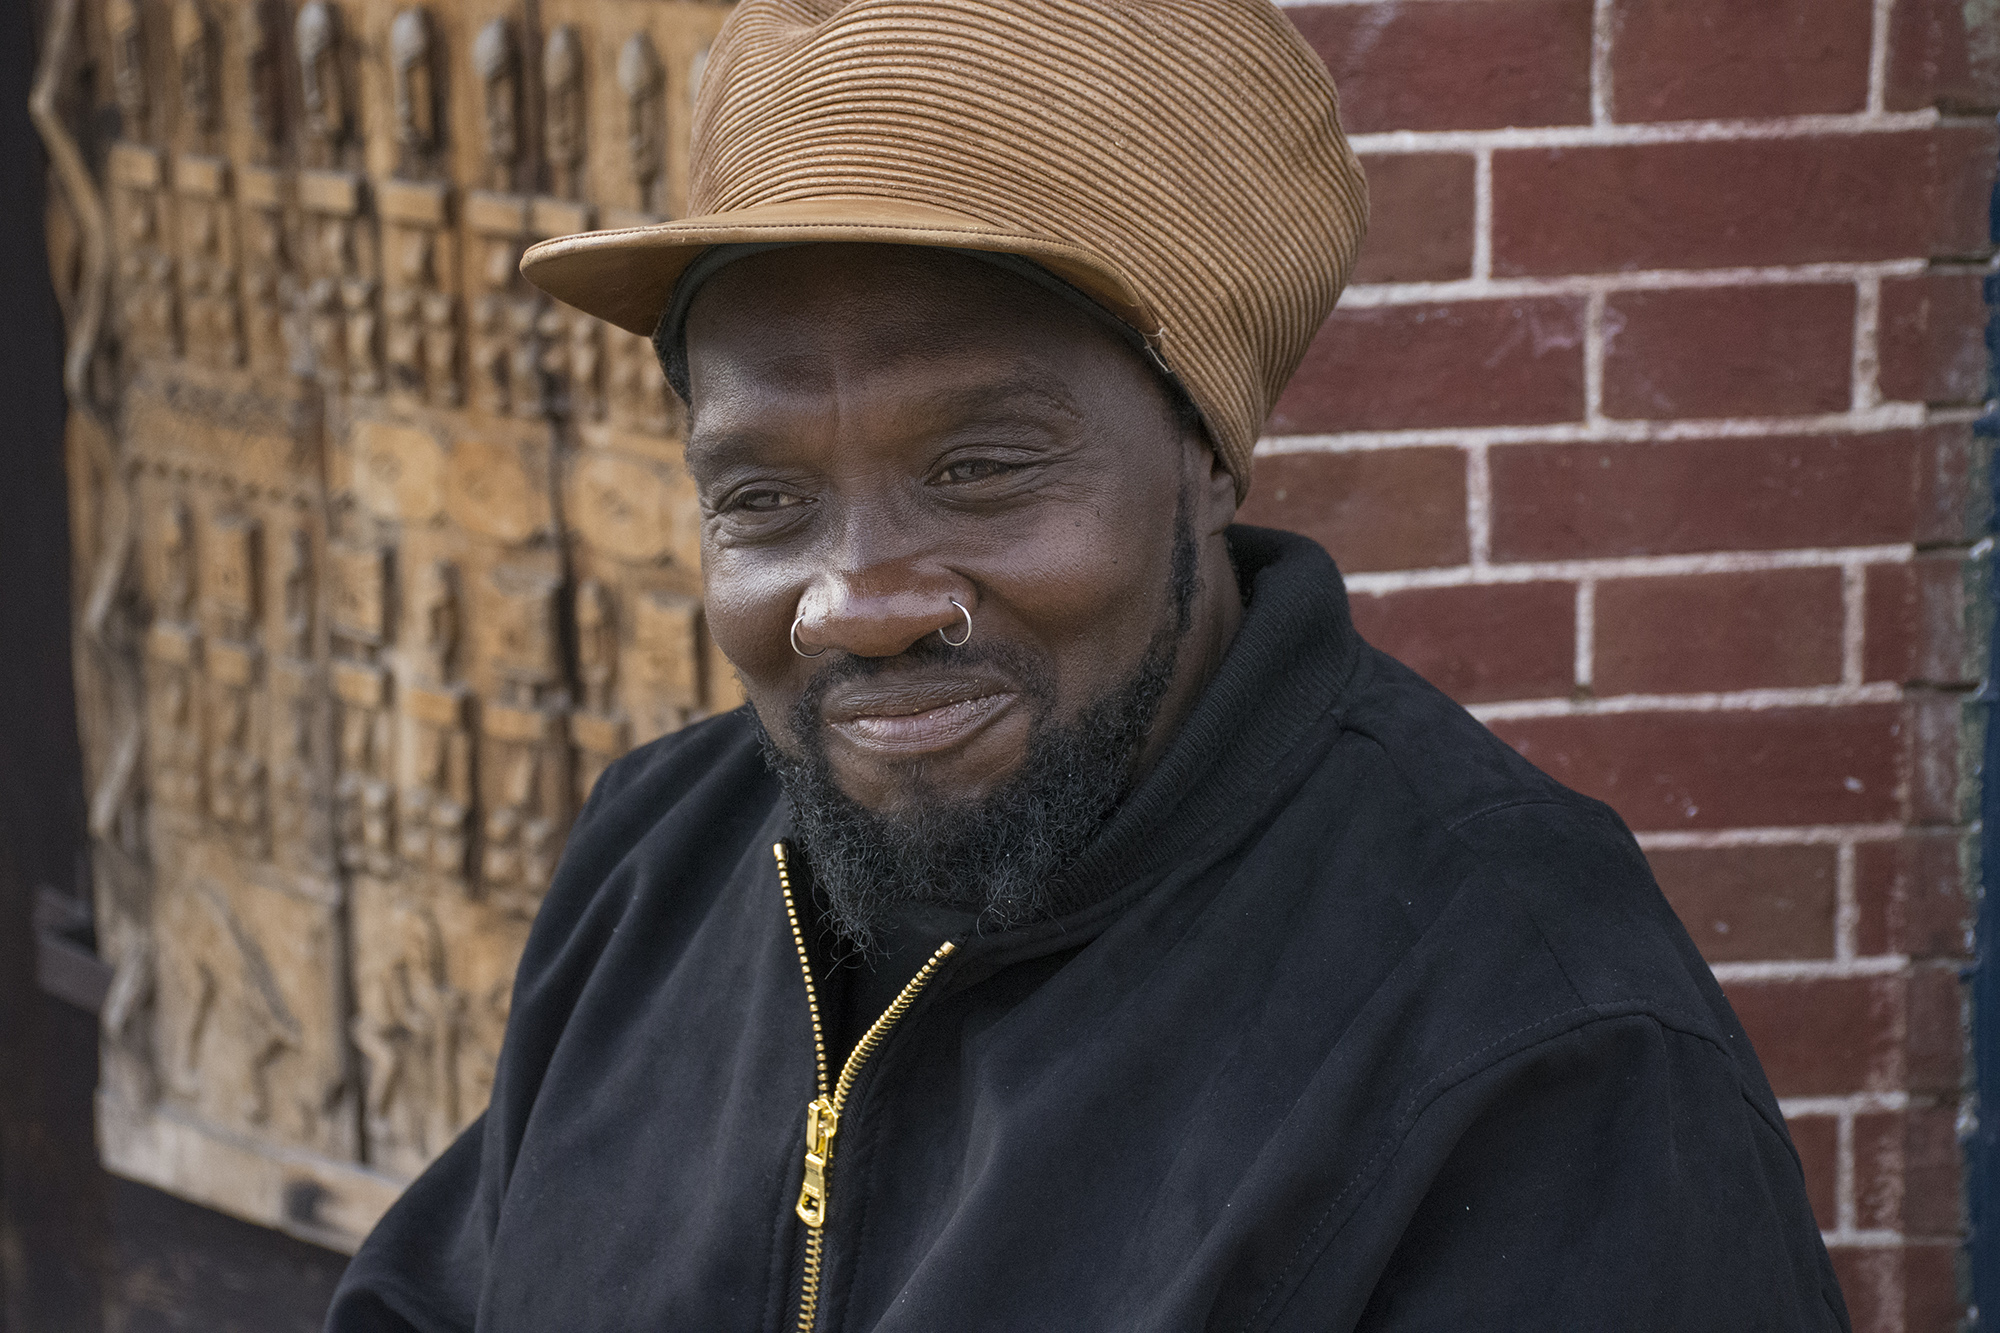 In the Hollins Market Neighborhood, Robert Williams is known as African Robert.